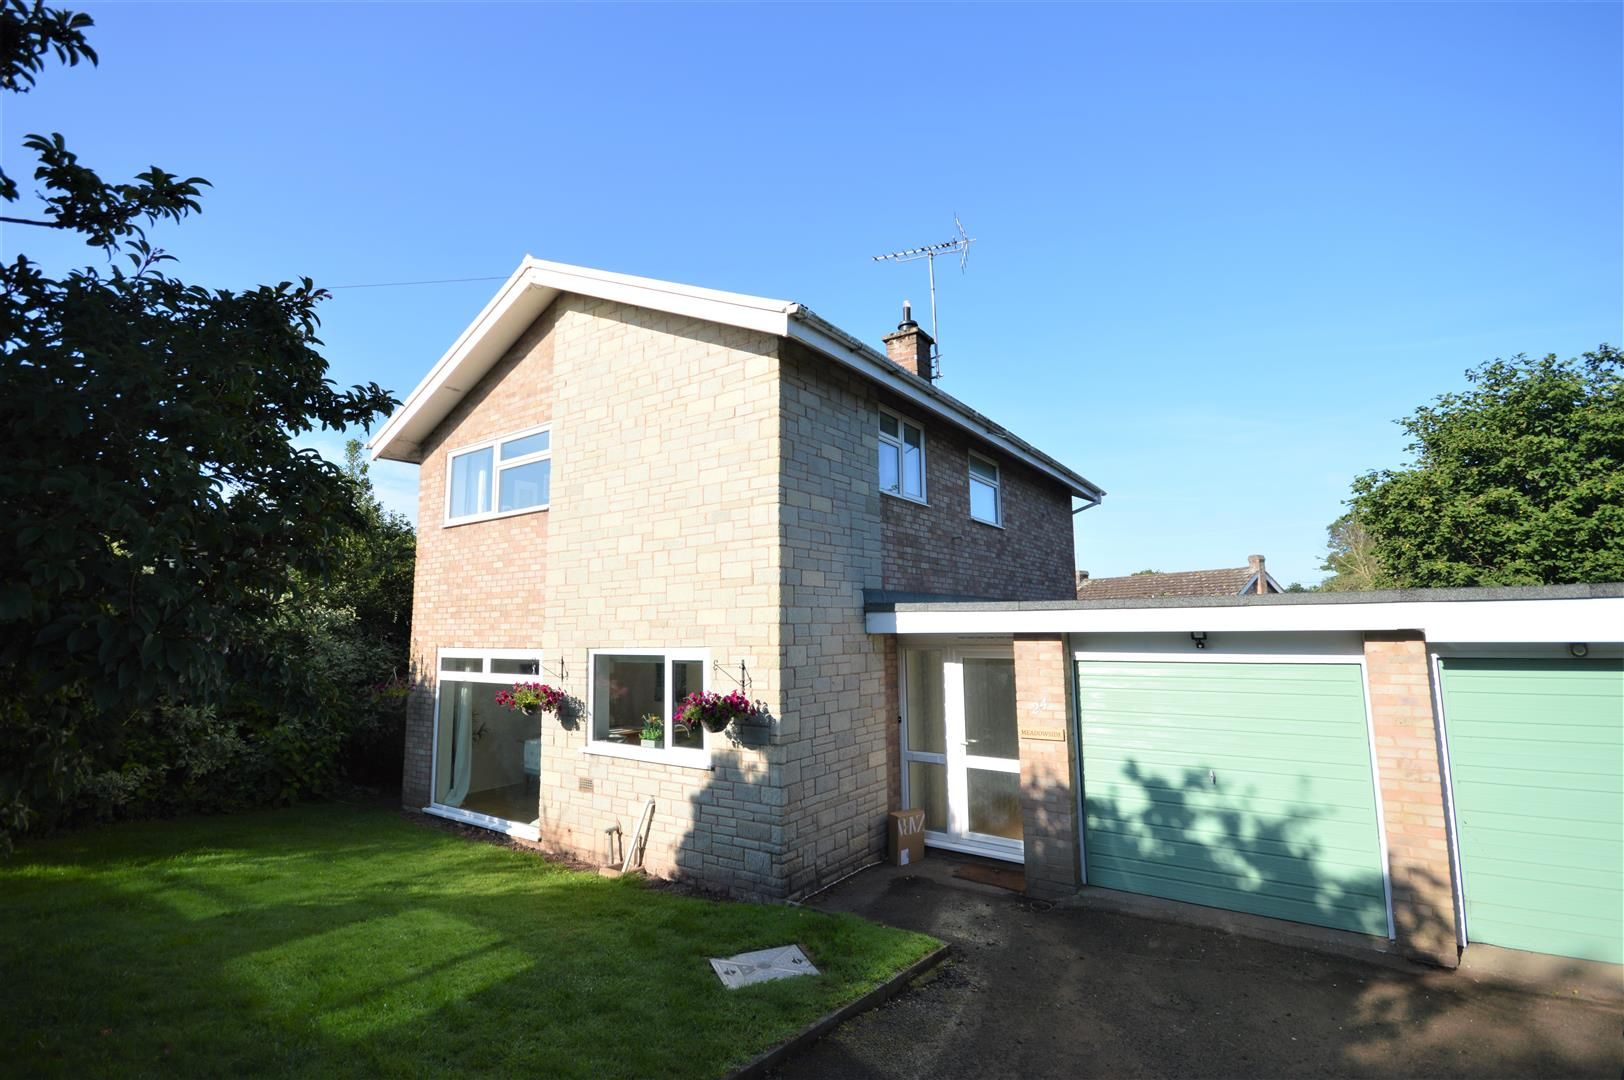 4 bed detached for sale in Luston  - Property Image 1